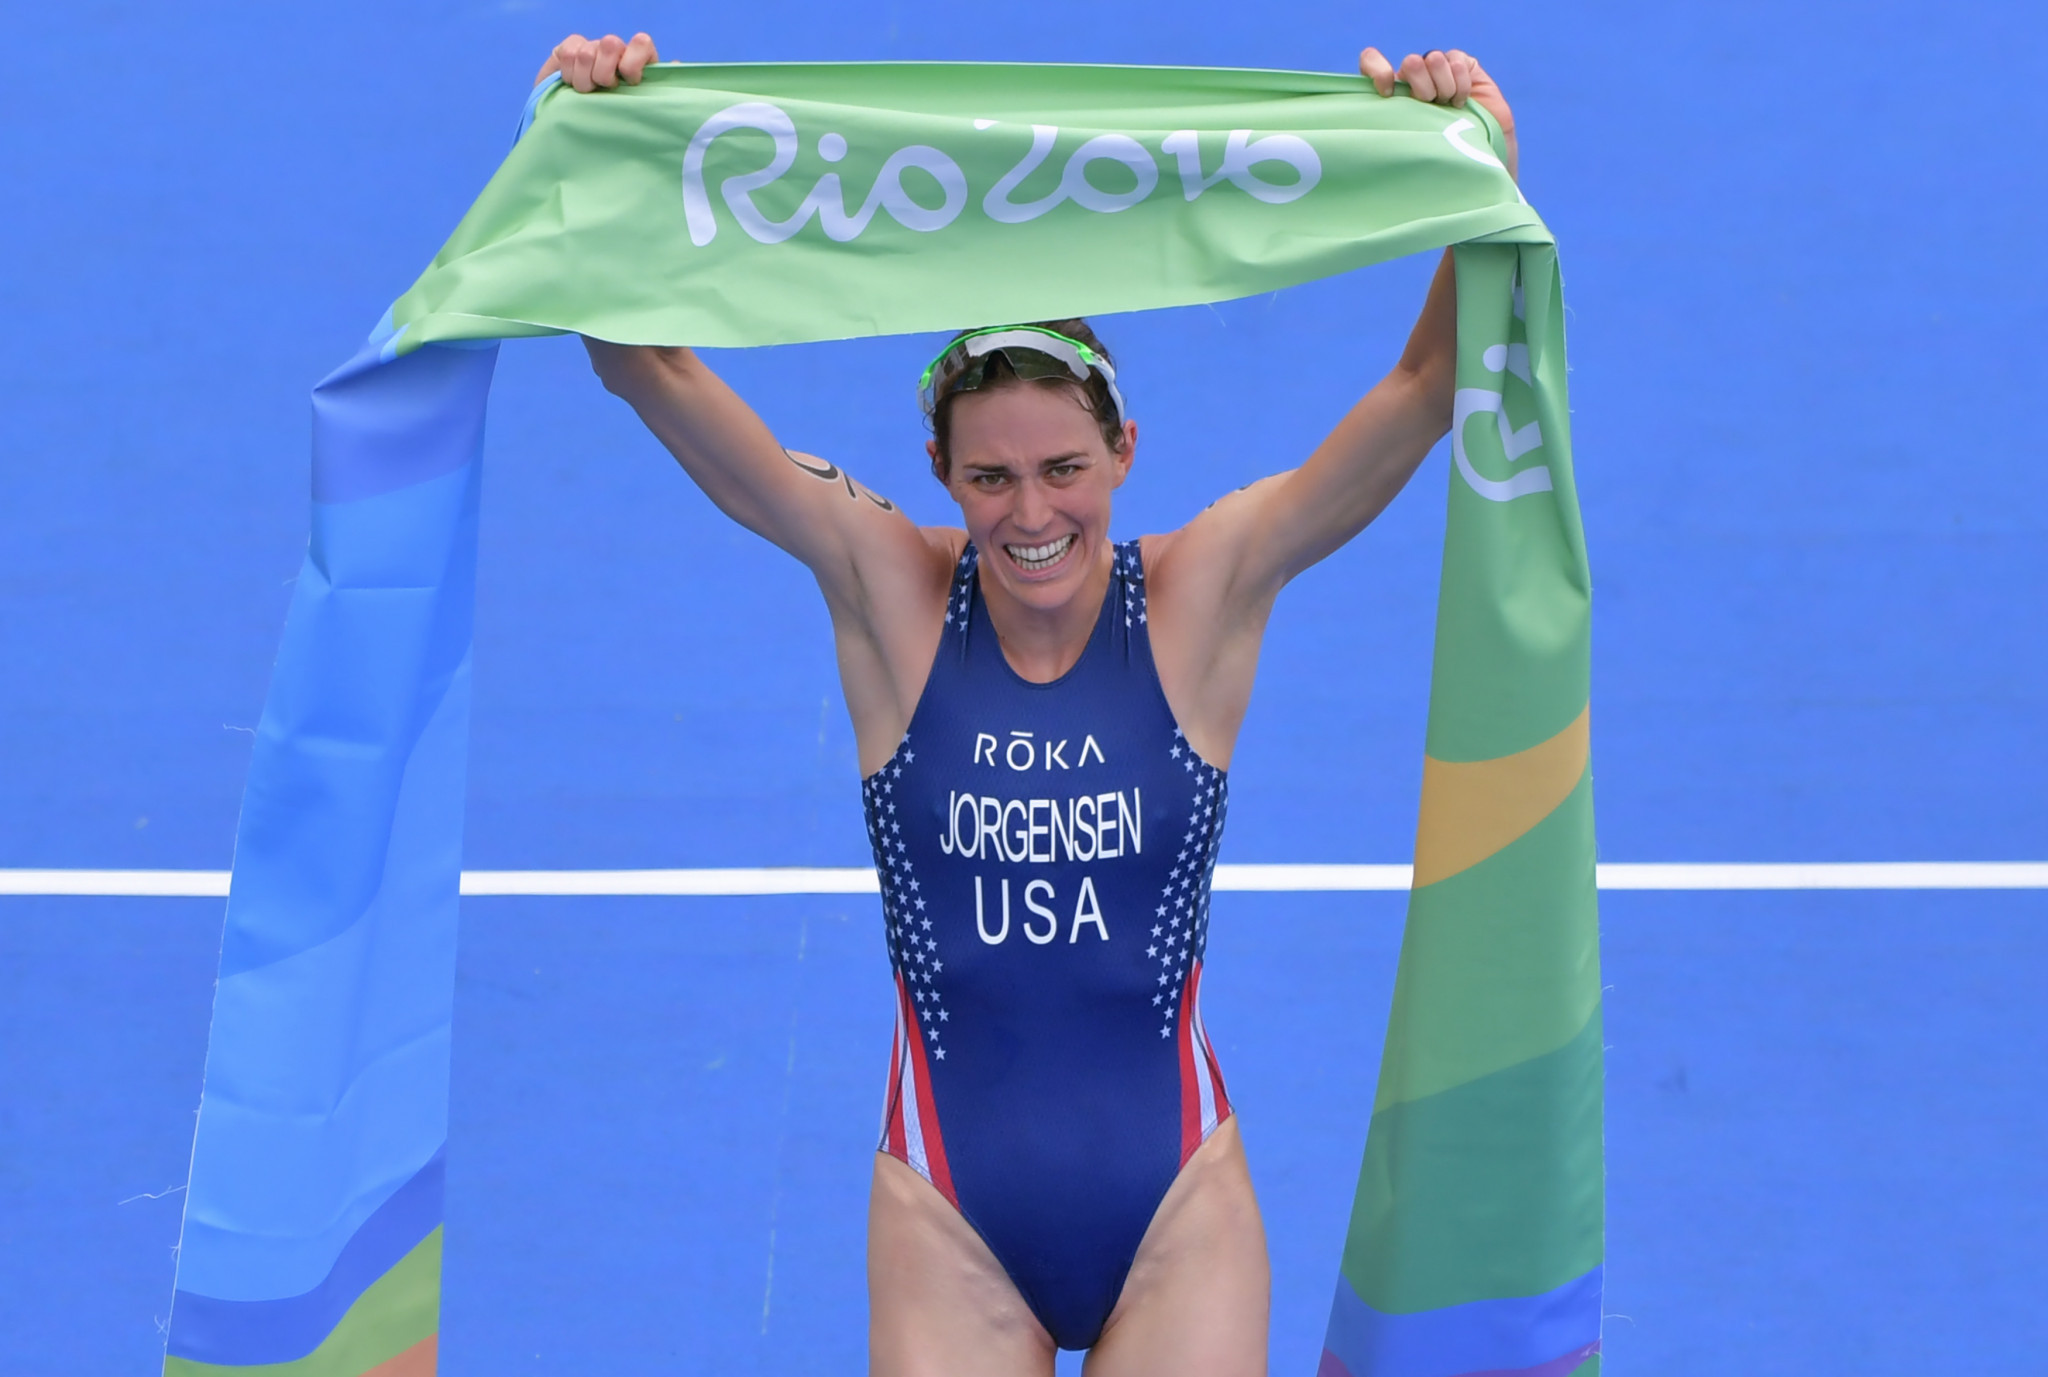 The highlight of Barry Siff's time as President of USA Triathlon was Gwen Jorgensen winning the United States' first Olympic gold medal in the sport at Rio 2016 ©Getty Images